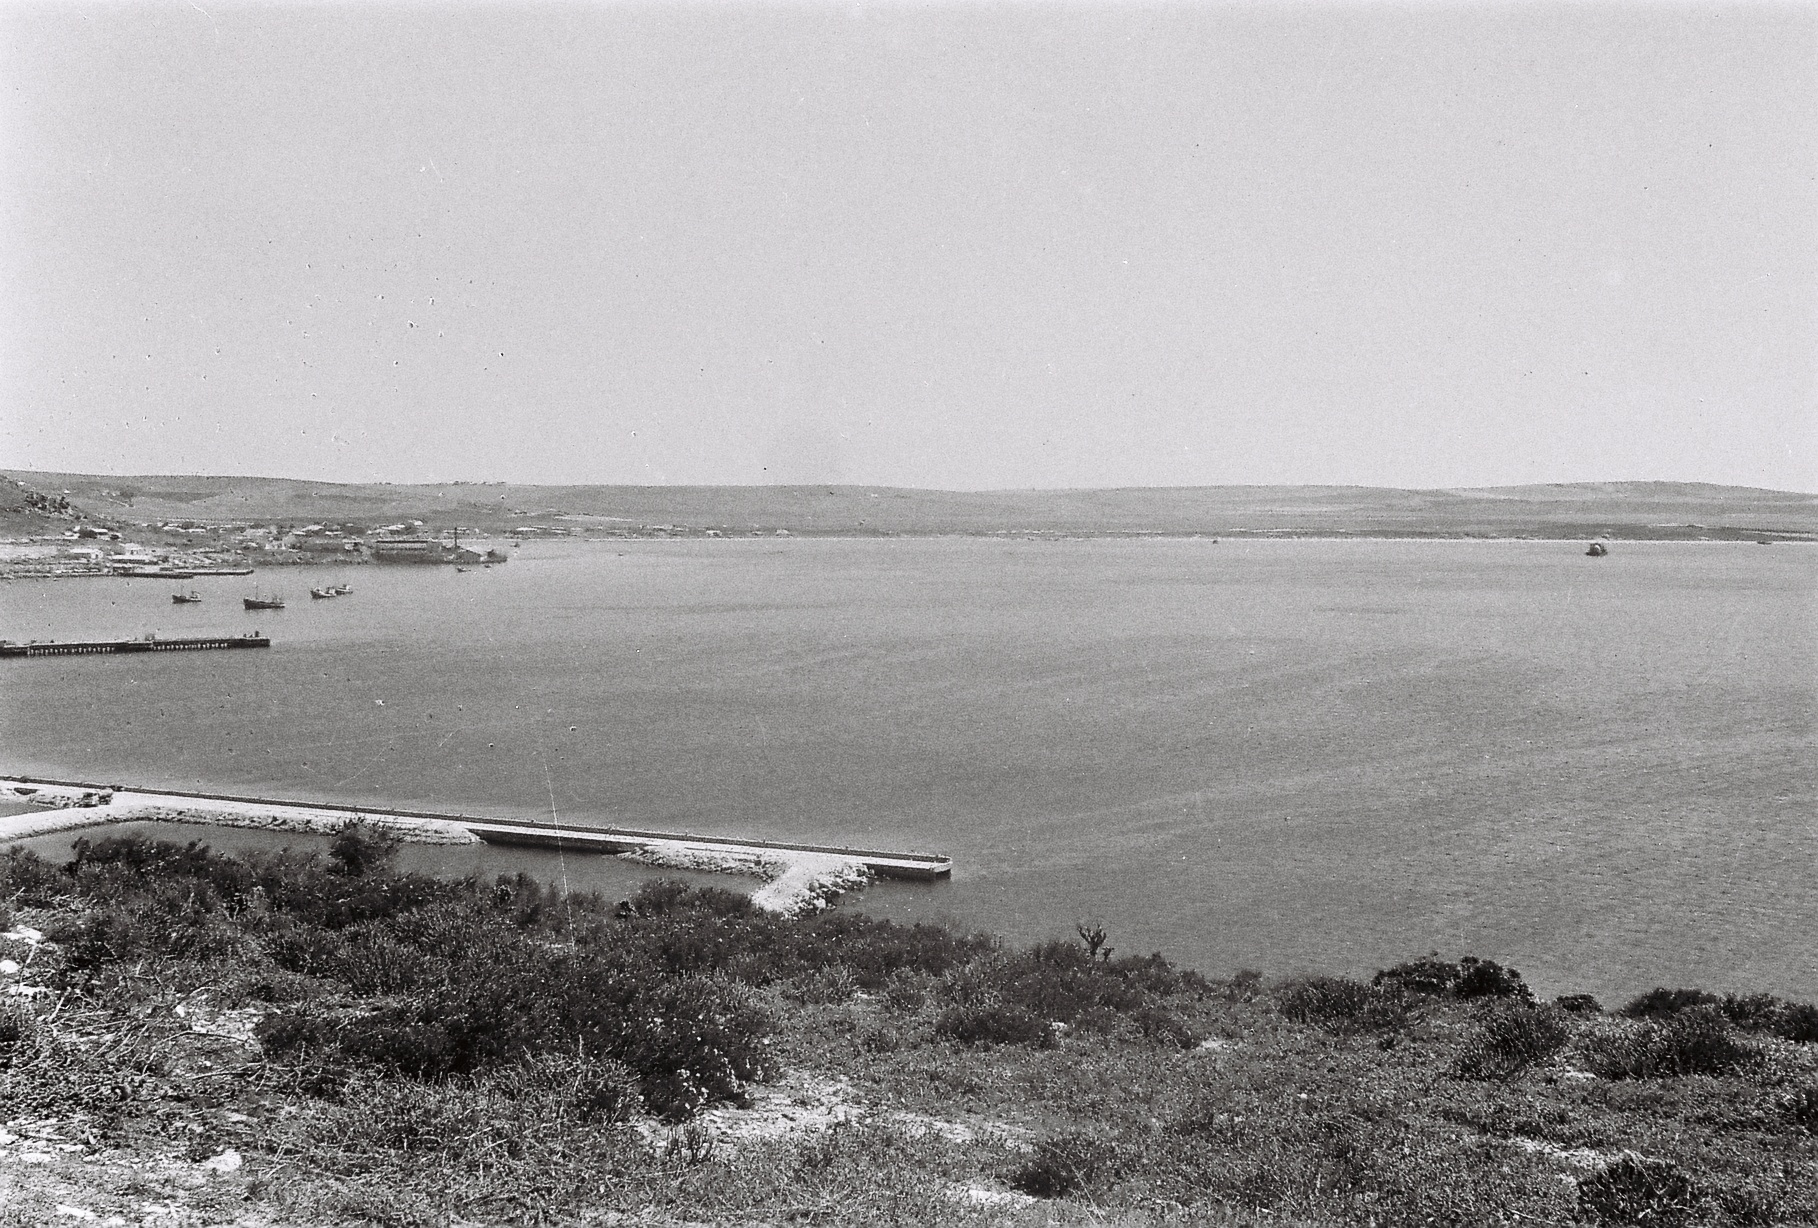 View of Saldanha Bay